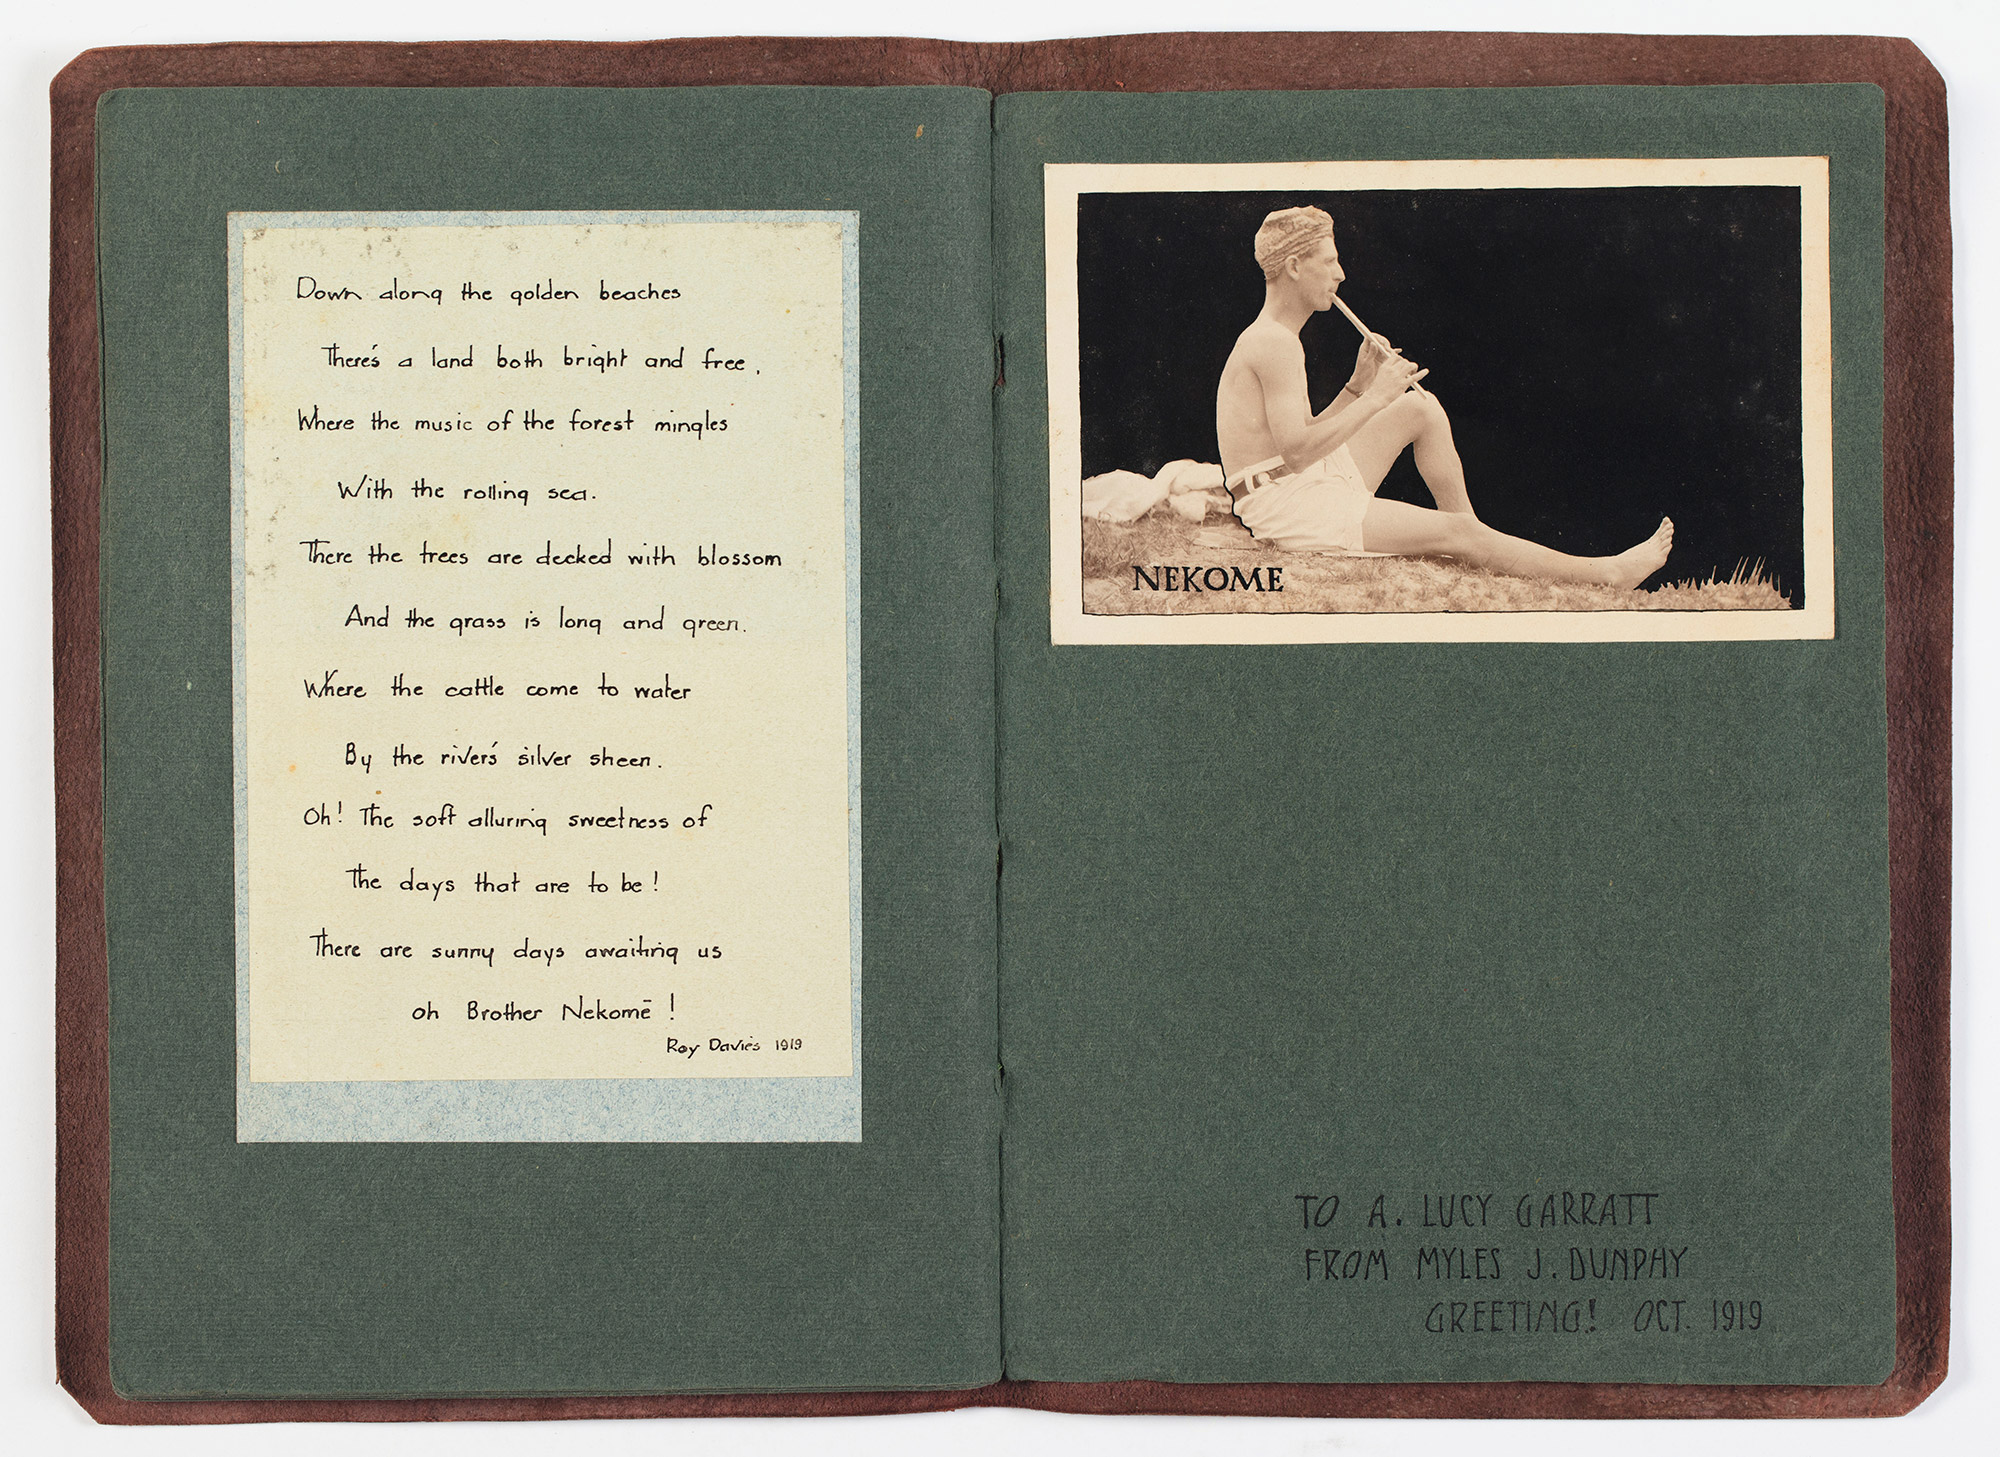 An open booklet featuring a handwritten poem and a photo of a man playing a flute.